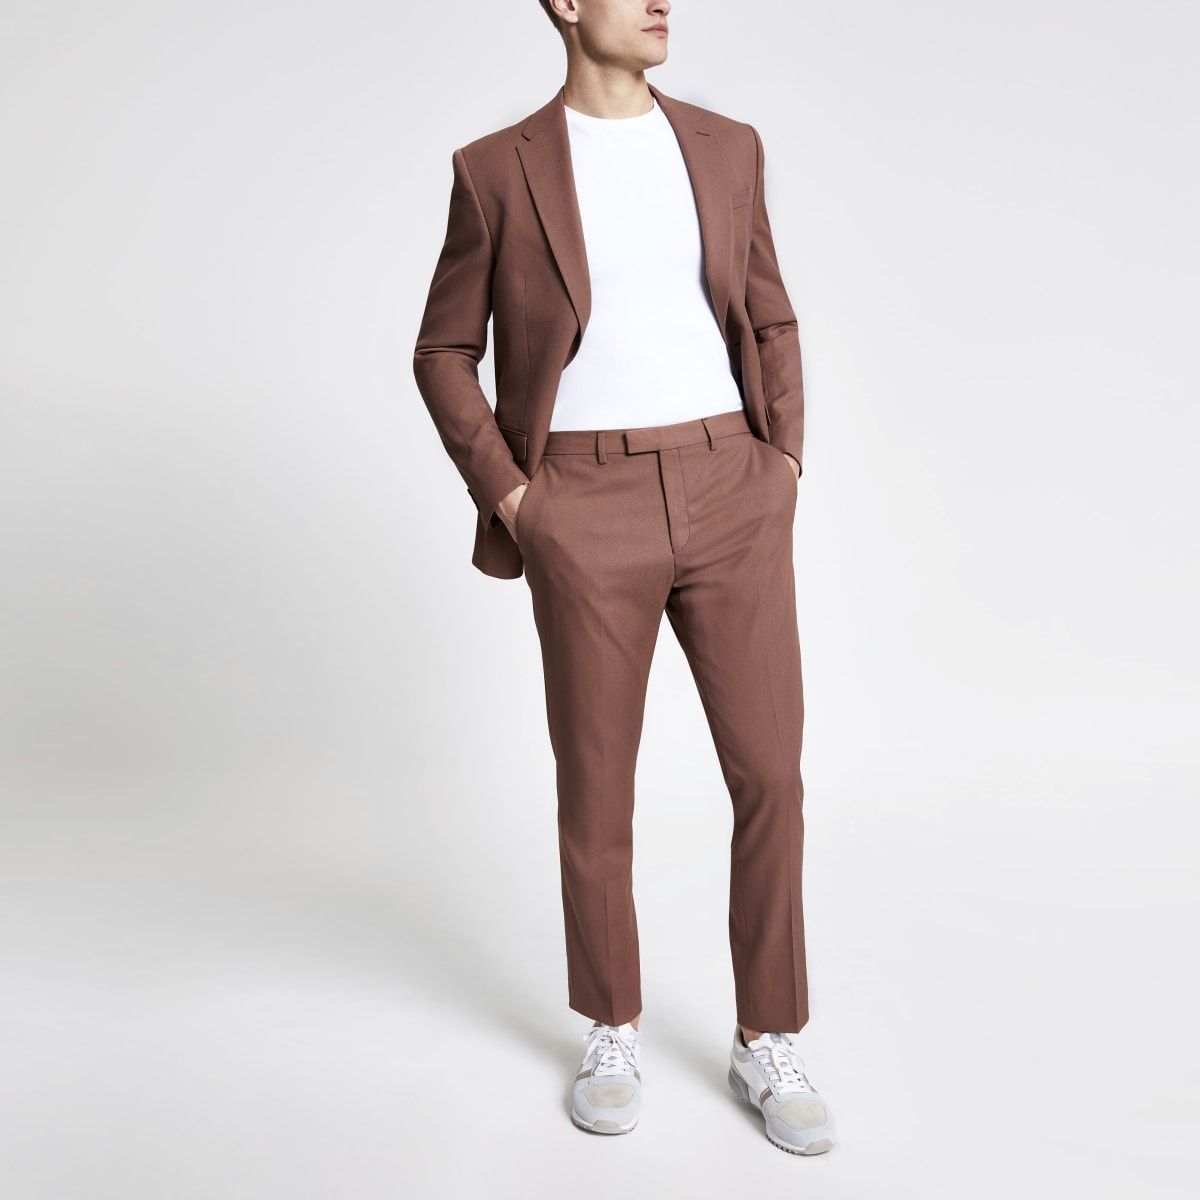 Brown twill suit pants